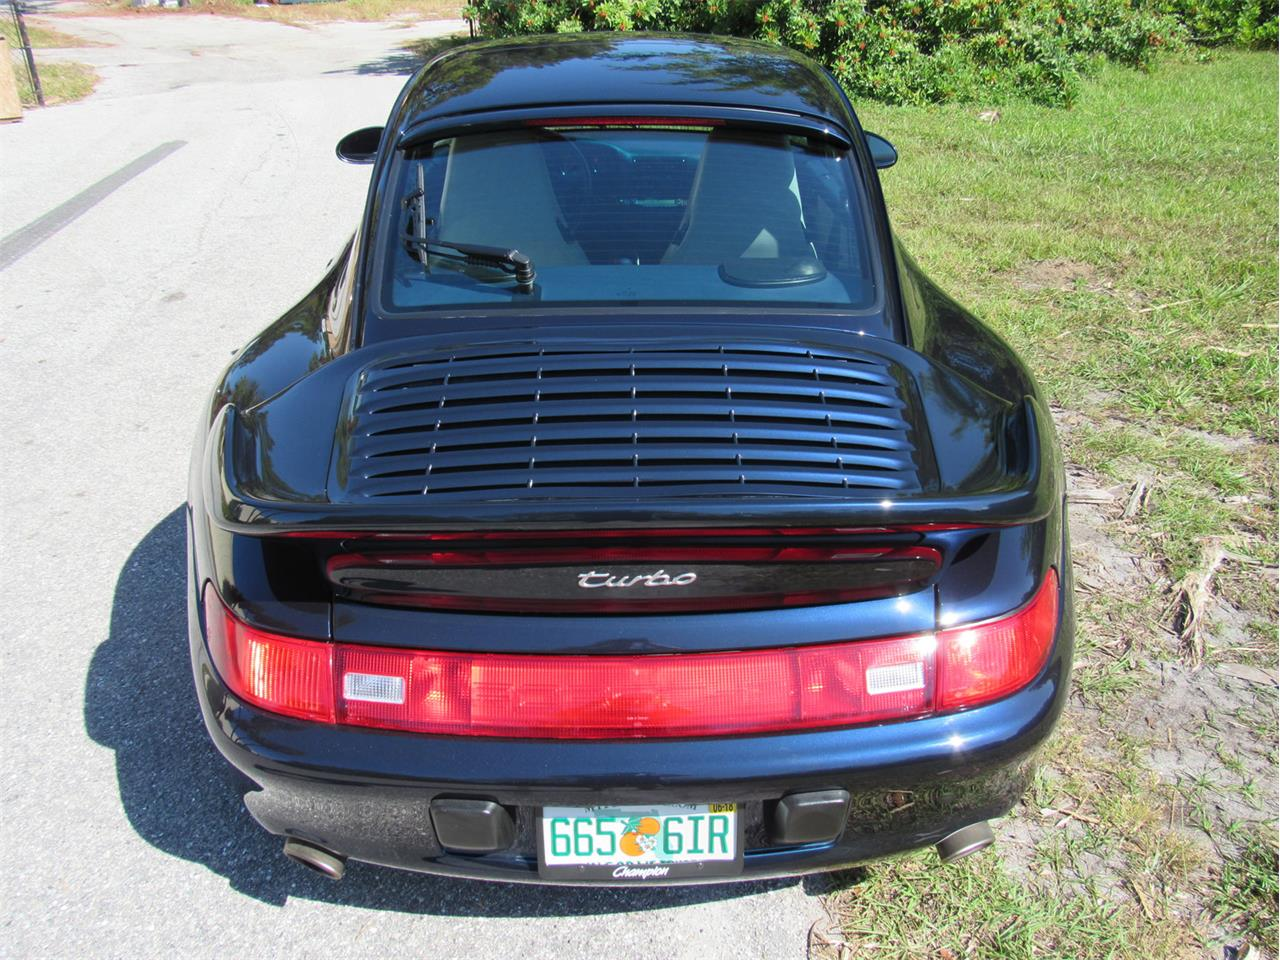 Large Picture of '96 993/911 Carrera Turbo located in Sarasota Florida - $209,900.00 - MCL2